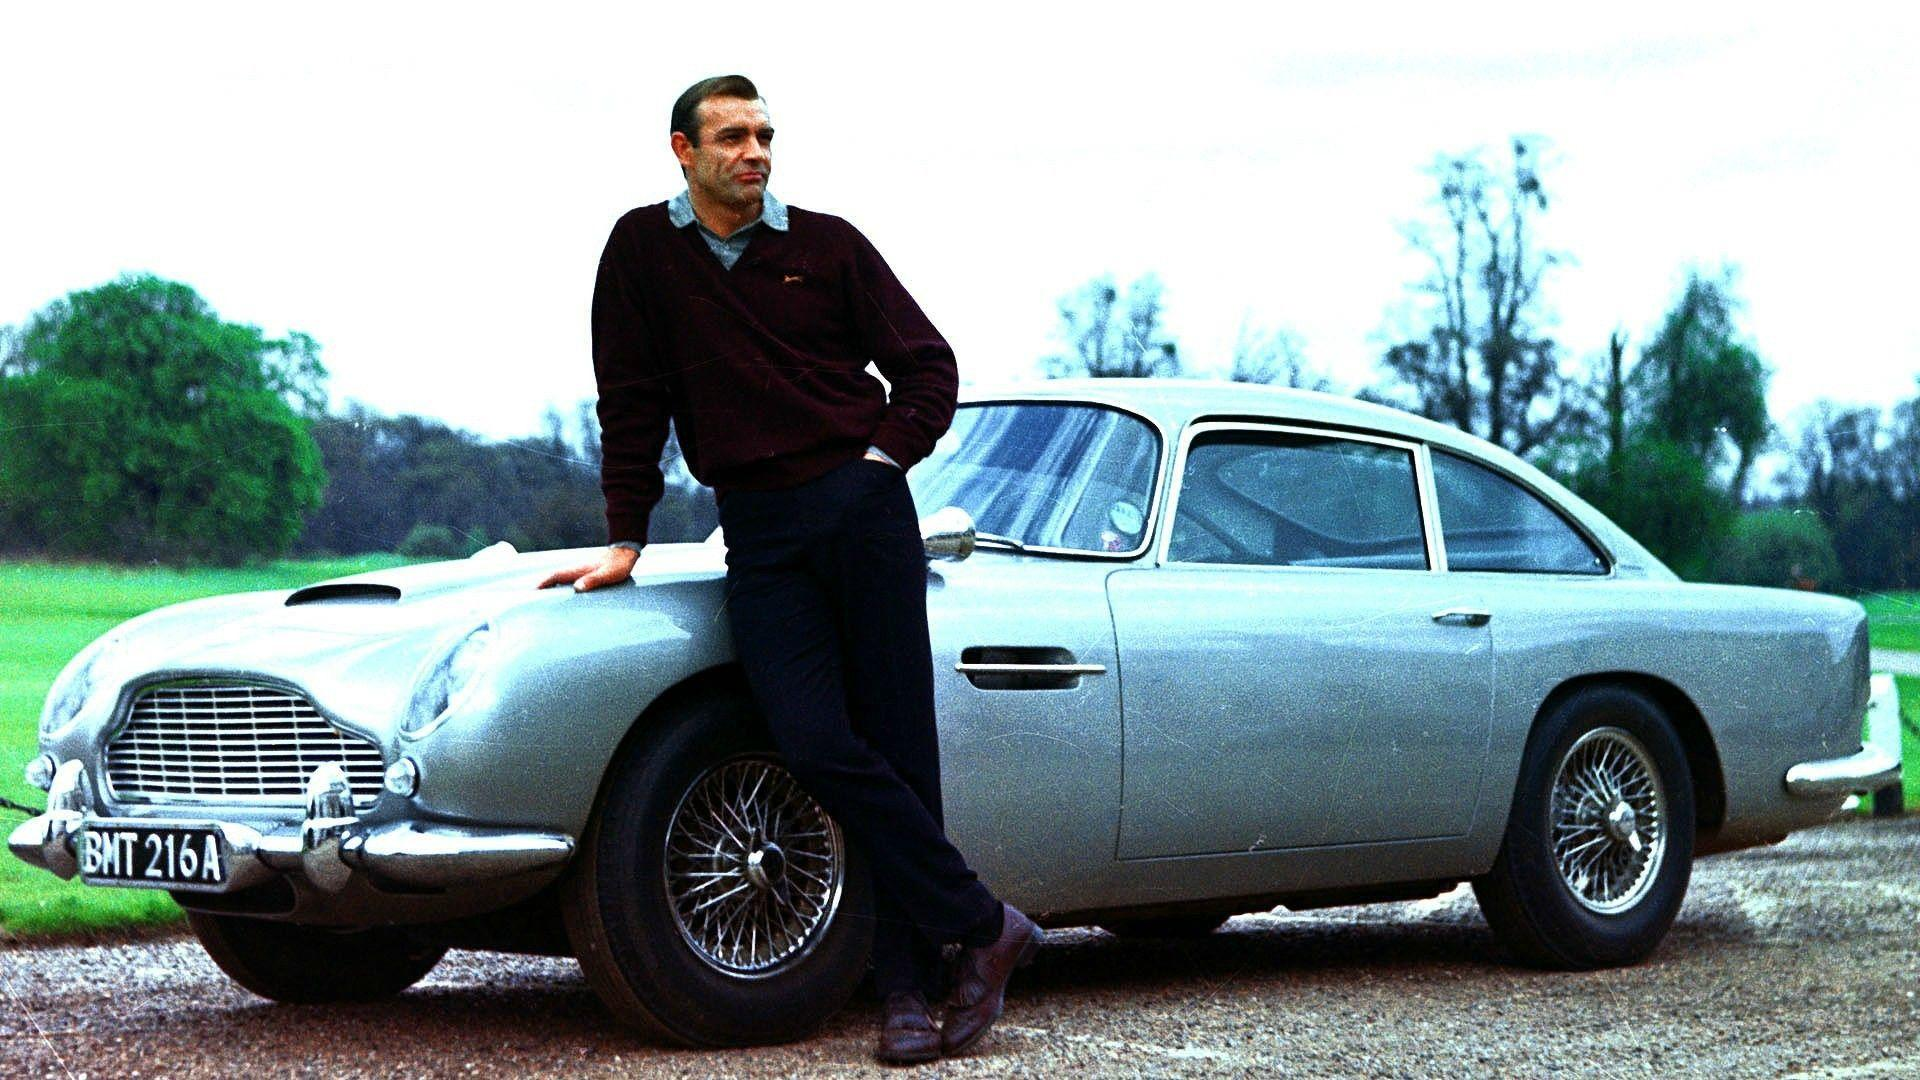 movies sean connery james bond car aston martin db5 007 Wallpapers ...